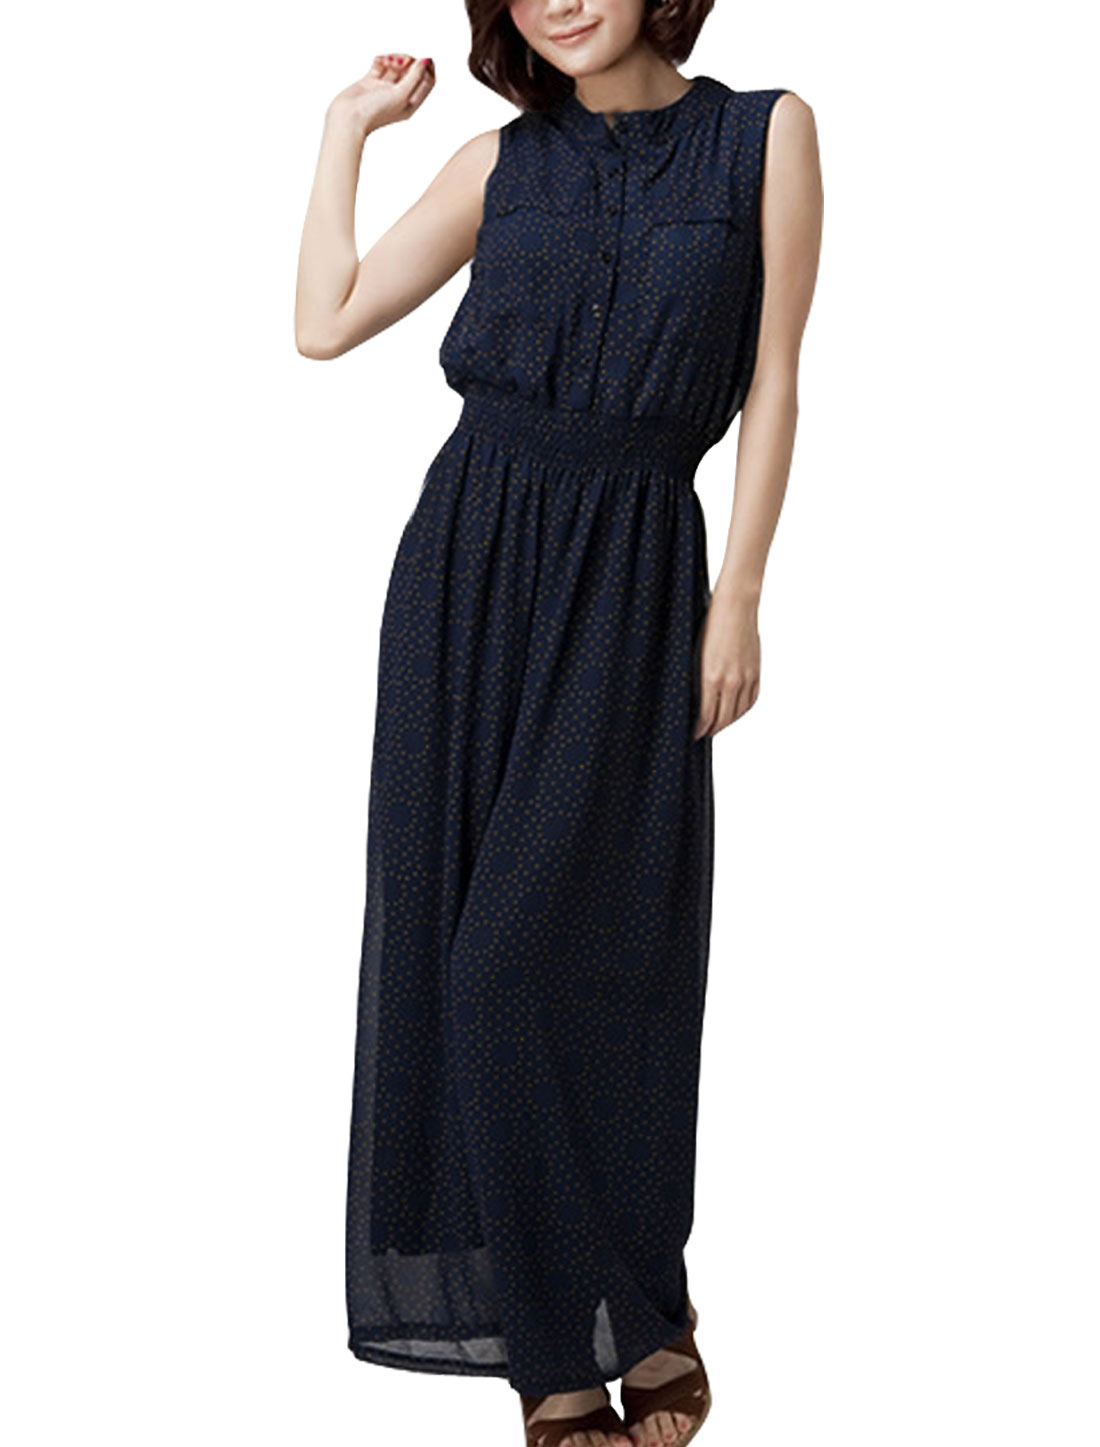 Ladies Dots Round Neck Chiffon Stretchy Autumn Jumpsuit Blue XS